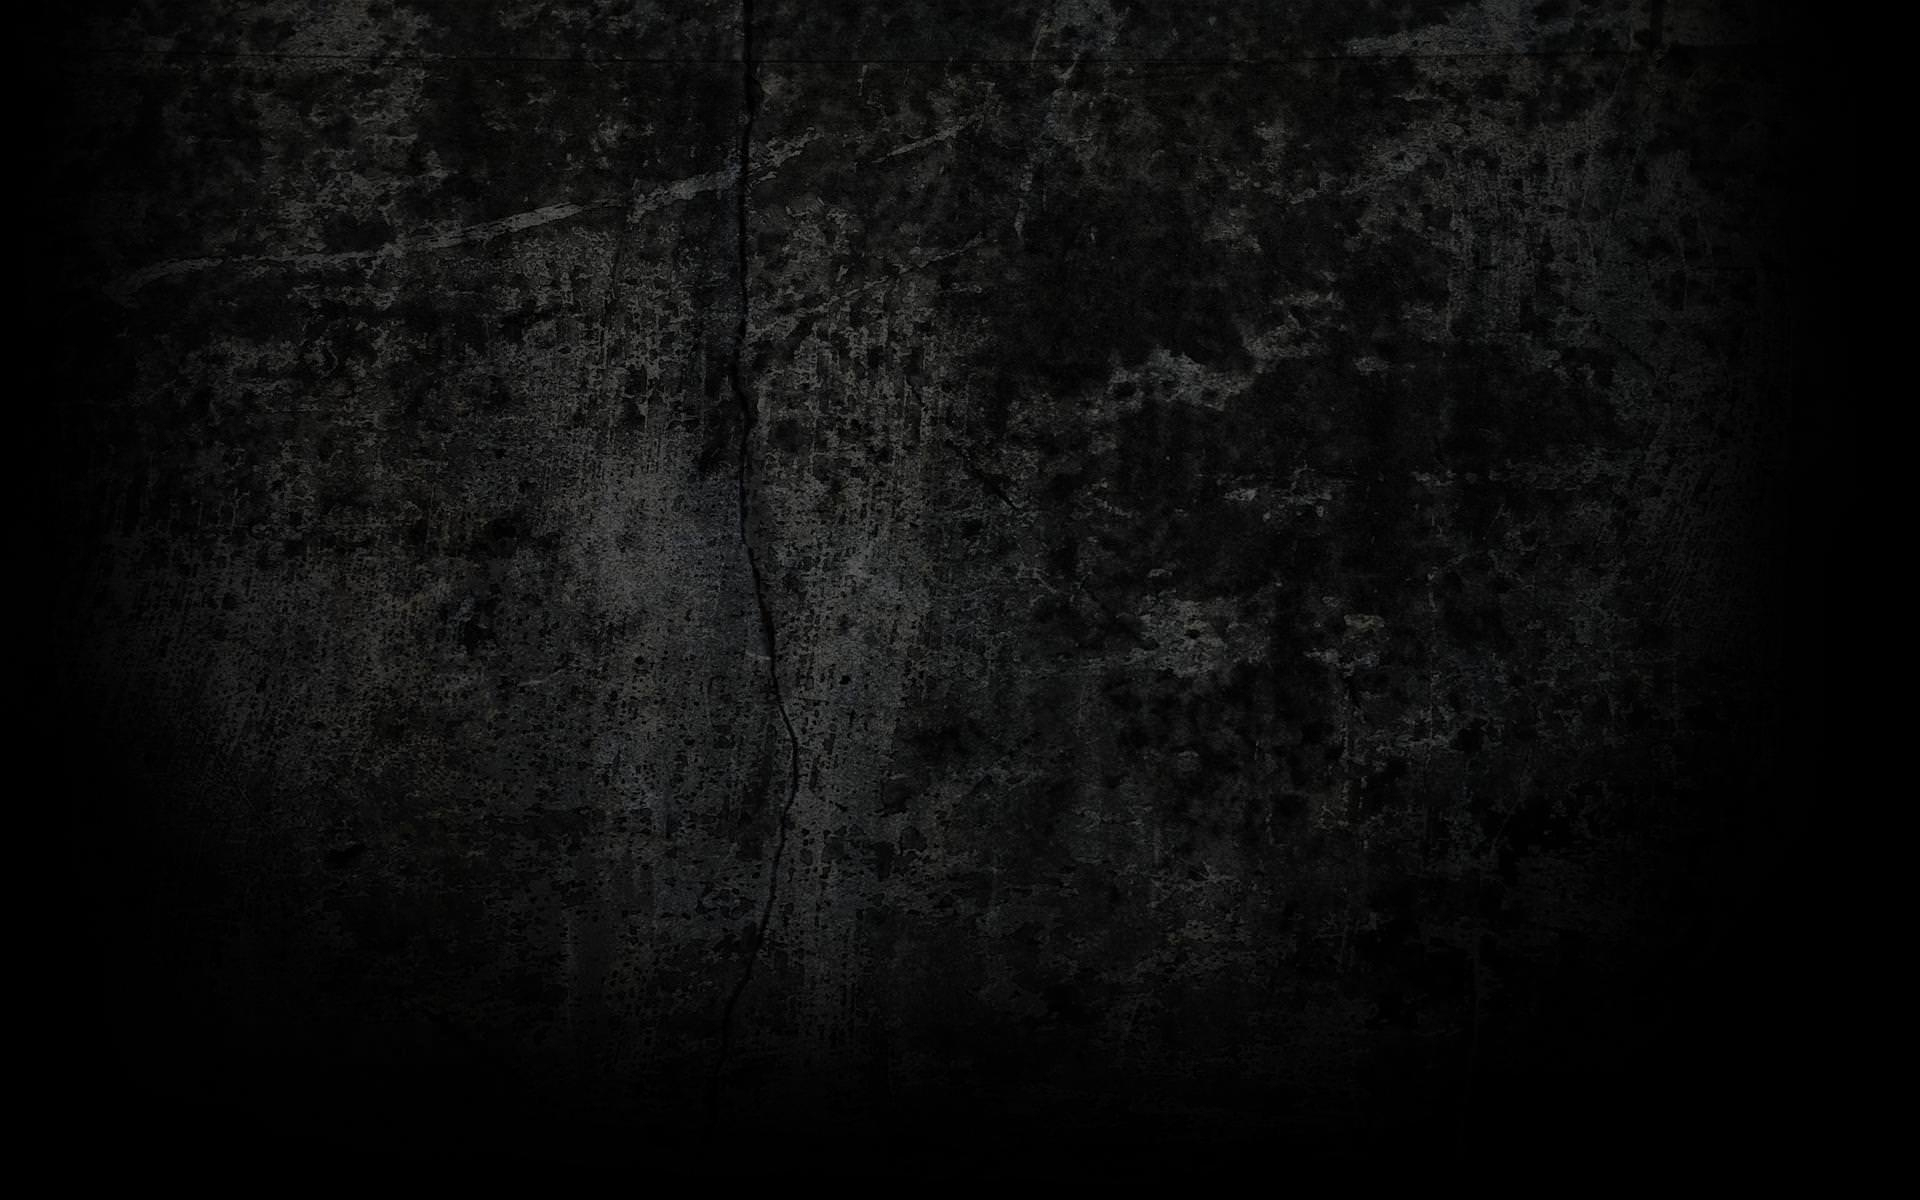 Grunge Effect Black Wallpaper for Website